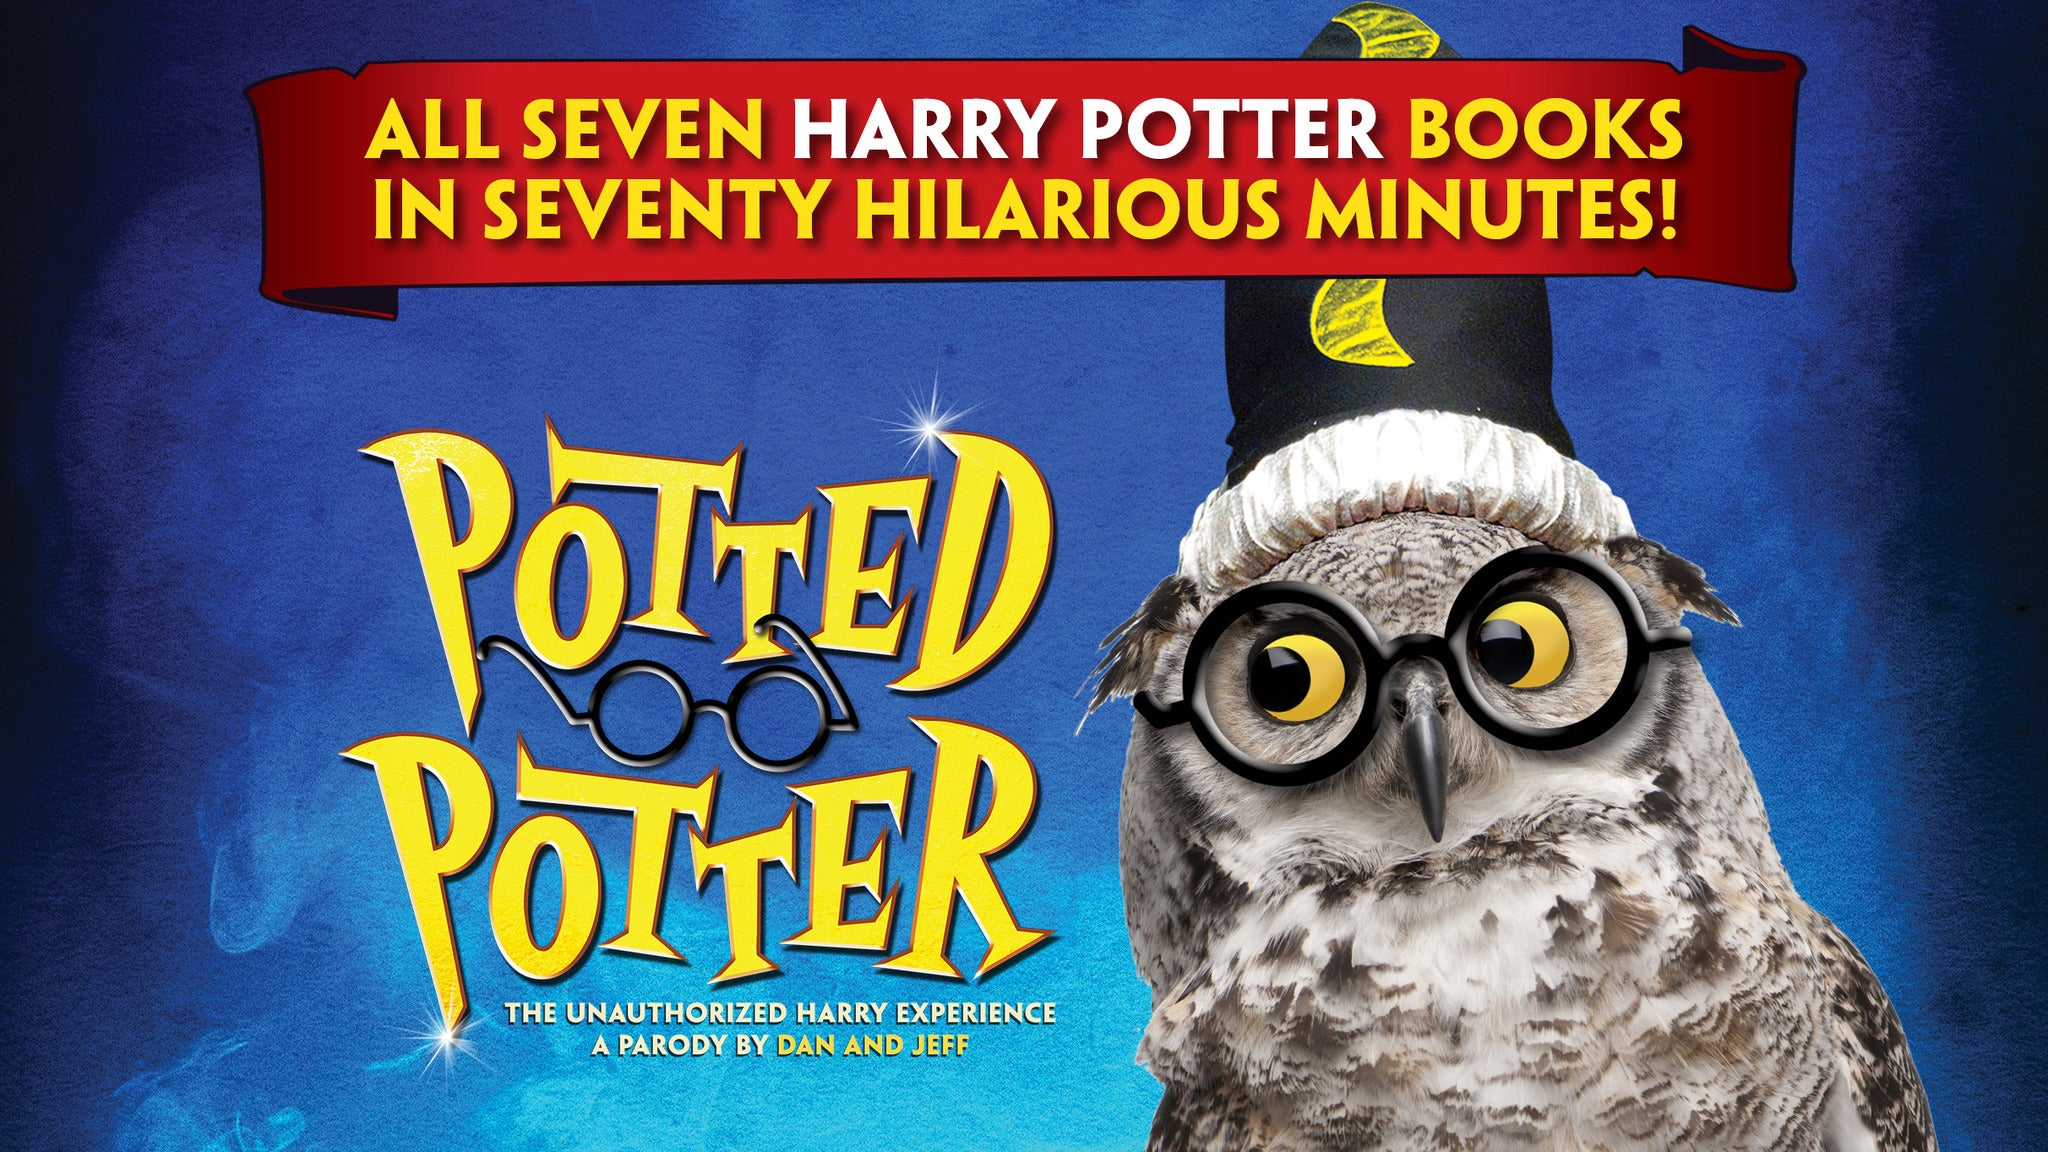 Potted Potter – The Unauthorized Harry Experience.